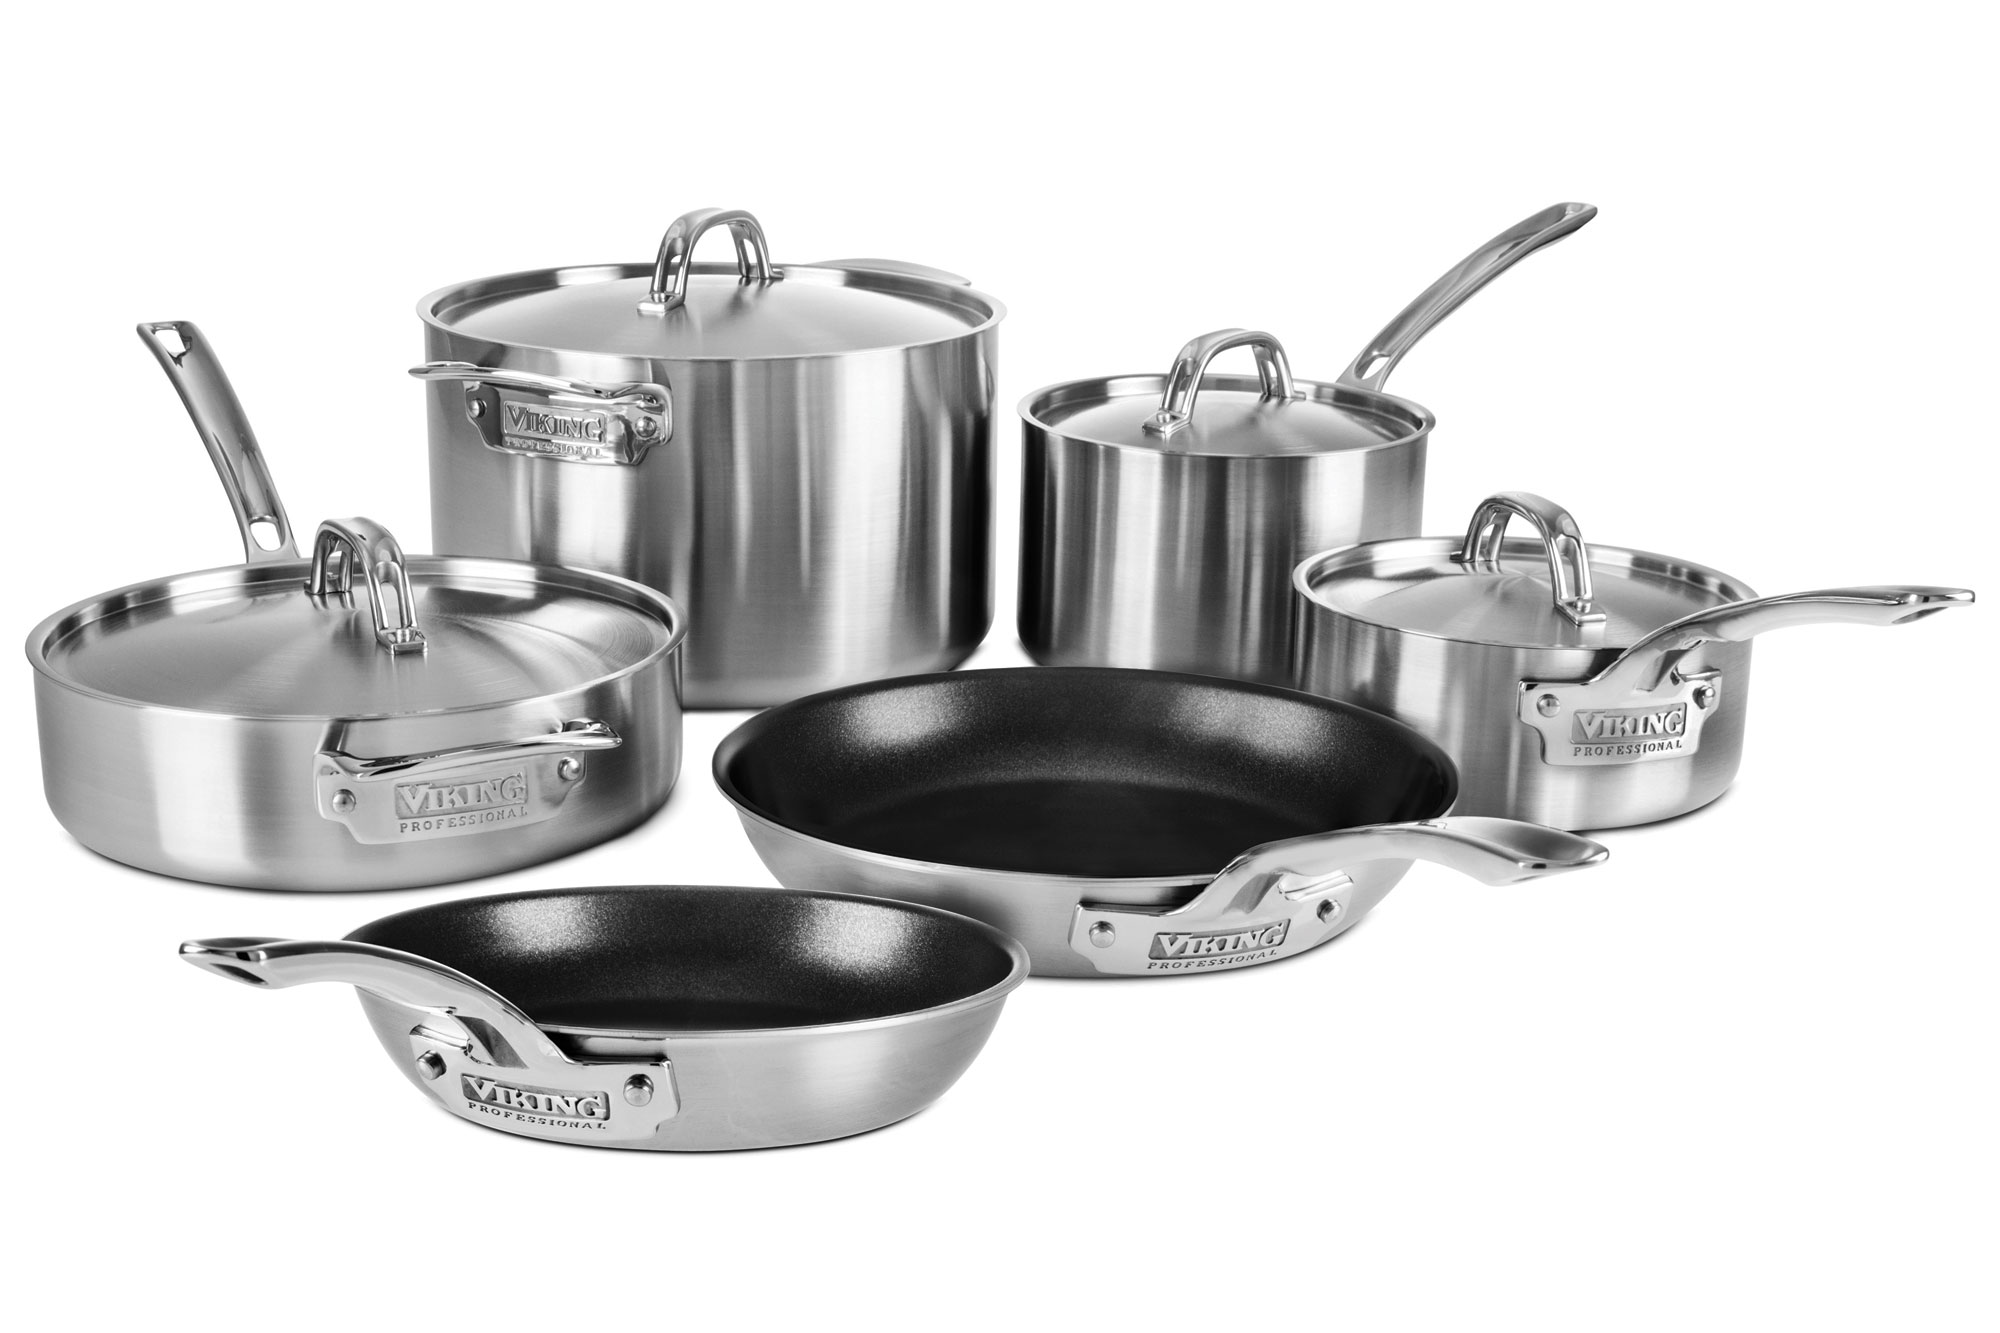 Viking Professional 5 Ply Stainless Steel Cookware Set With Nonstick